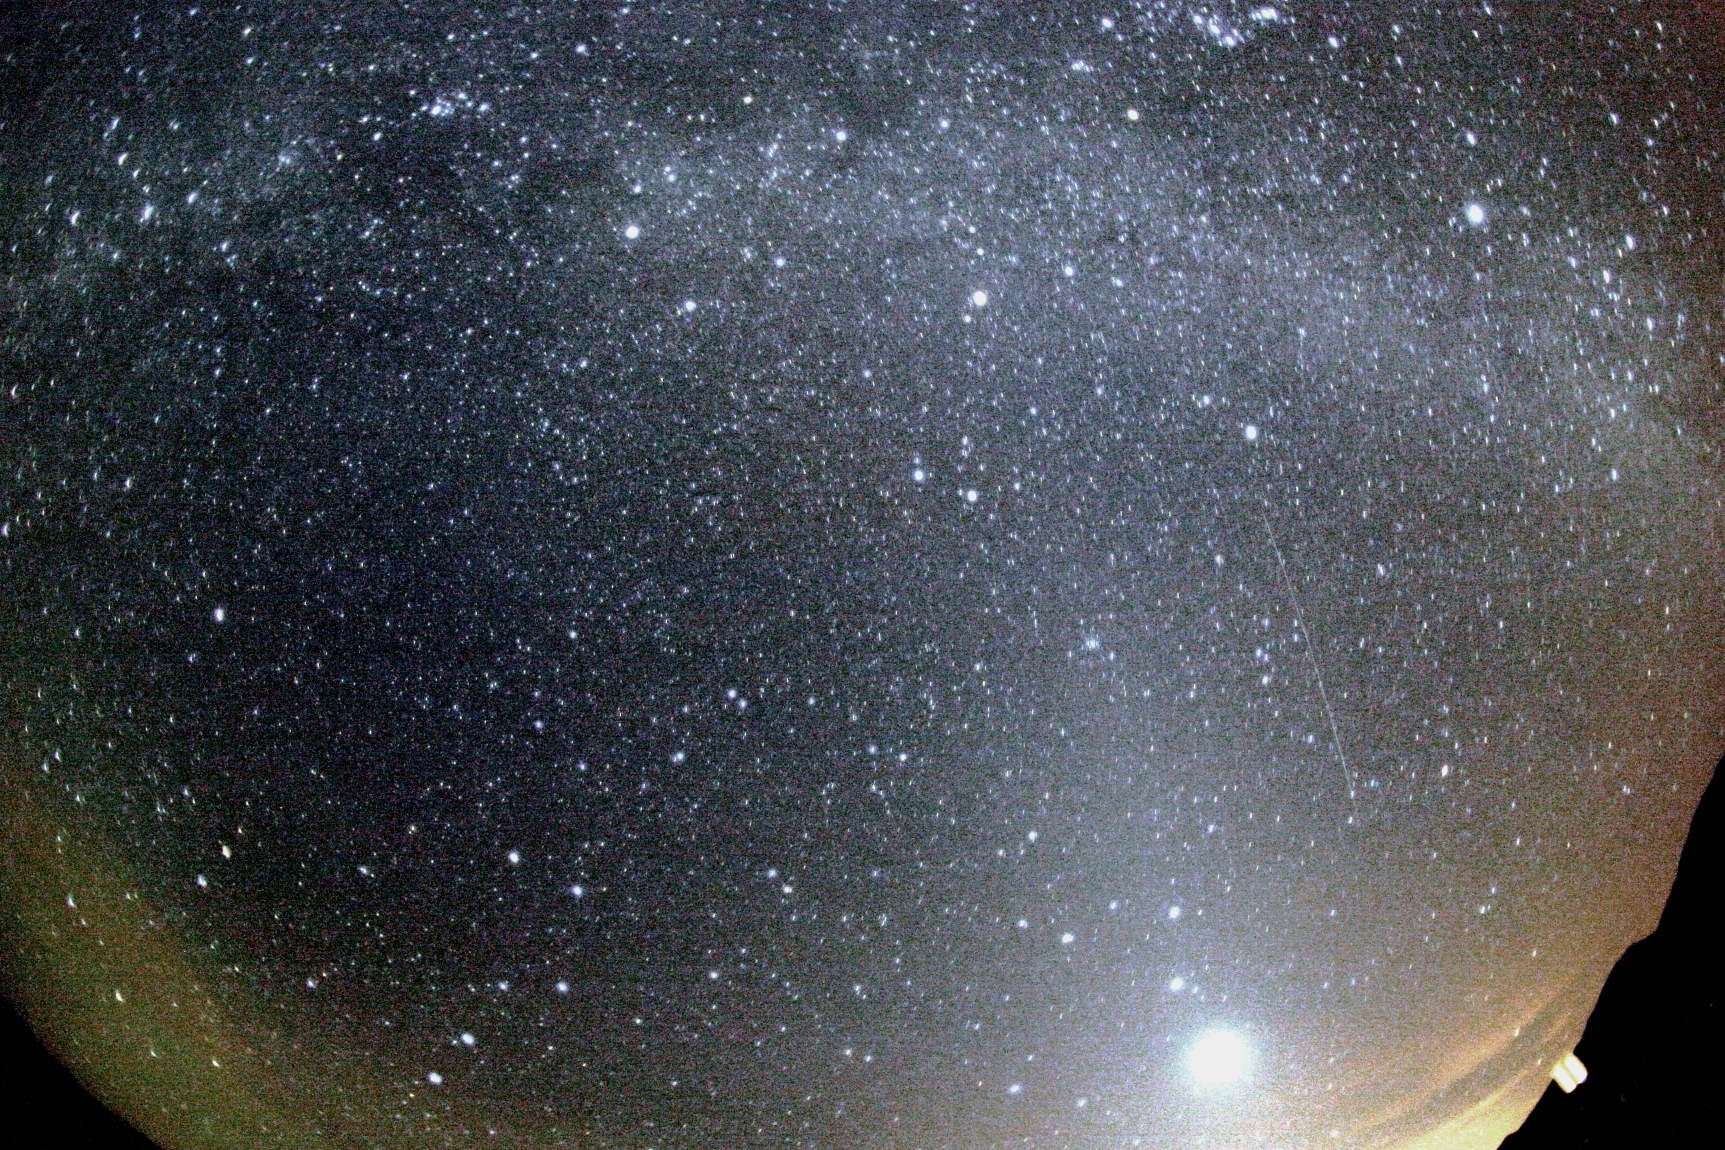 Orionid meteor shower this weekend, will we see the show?